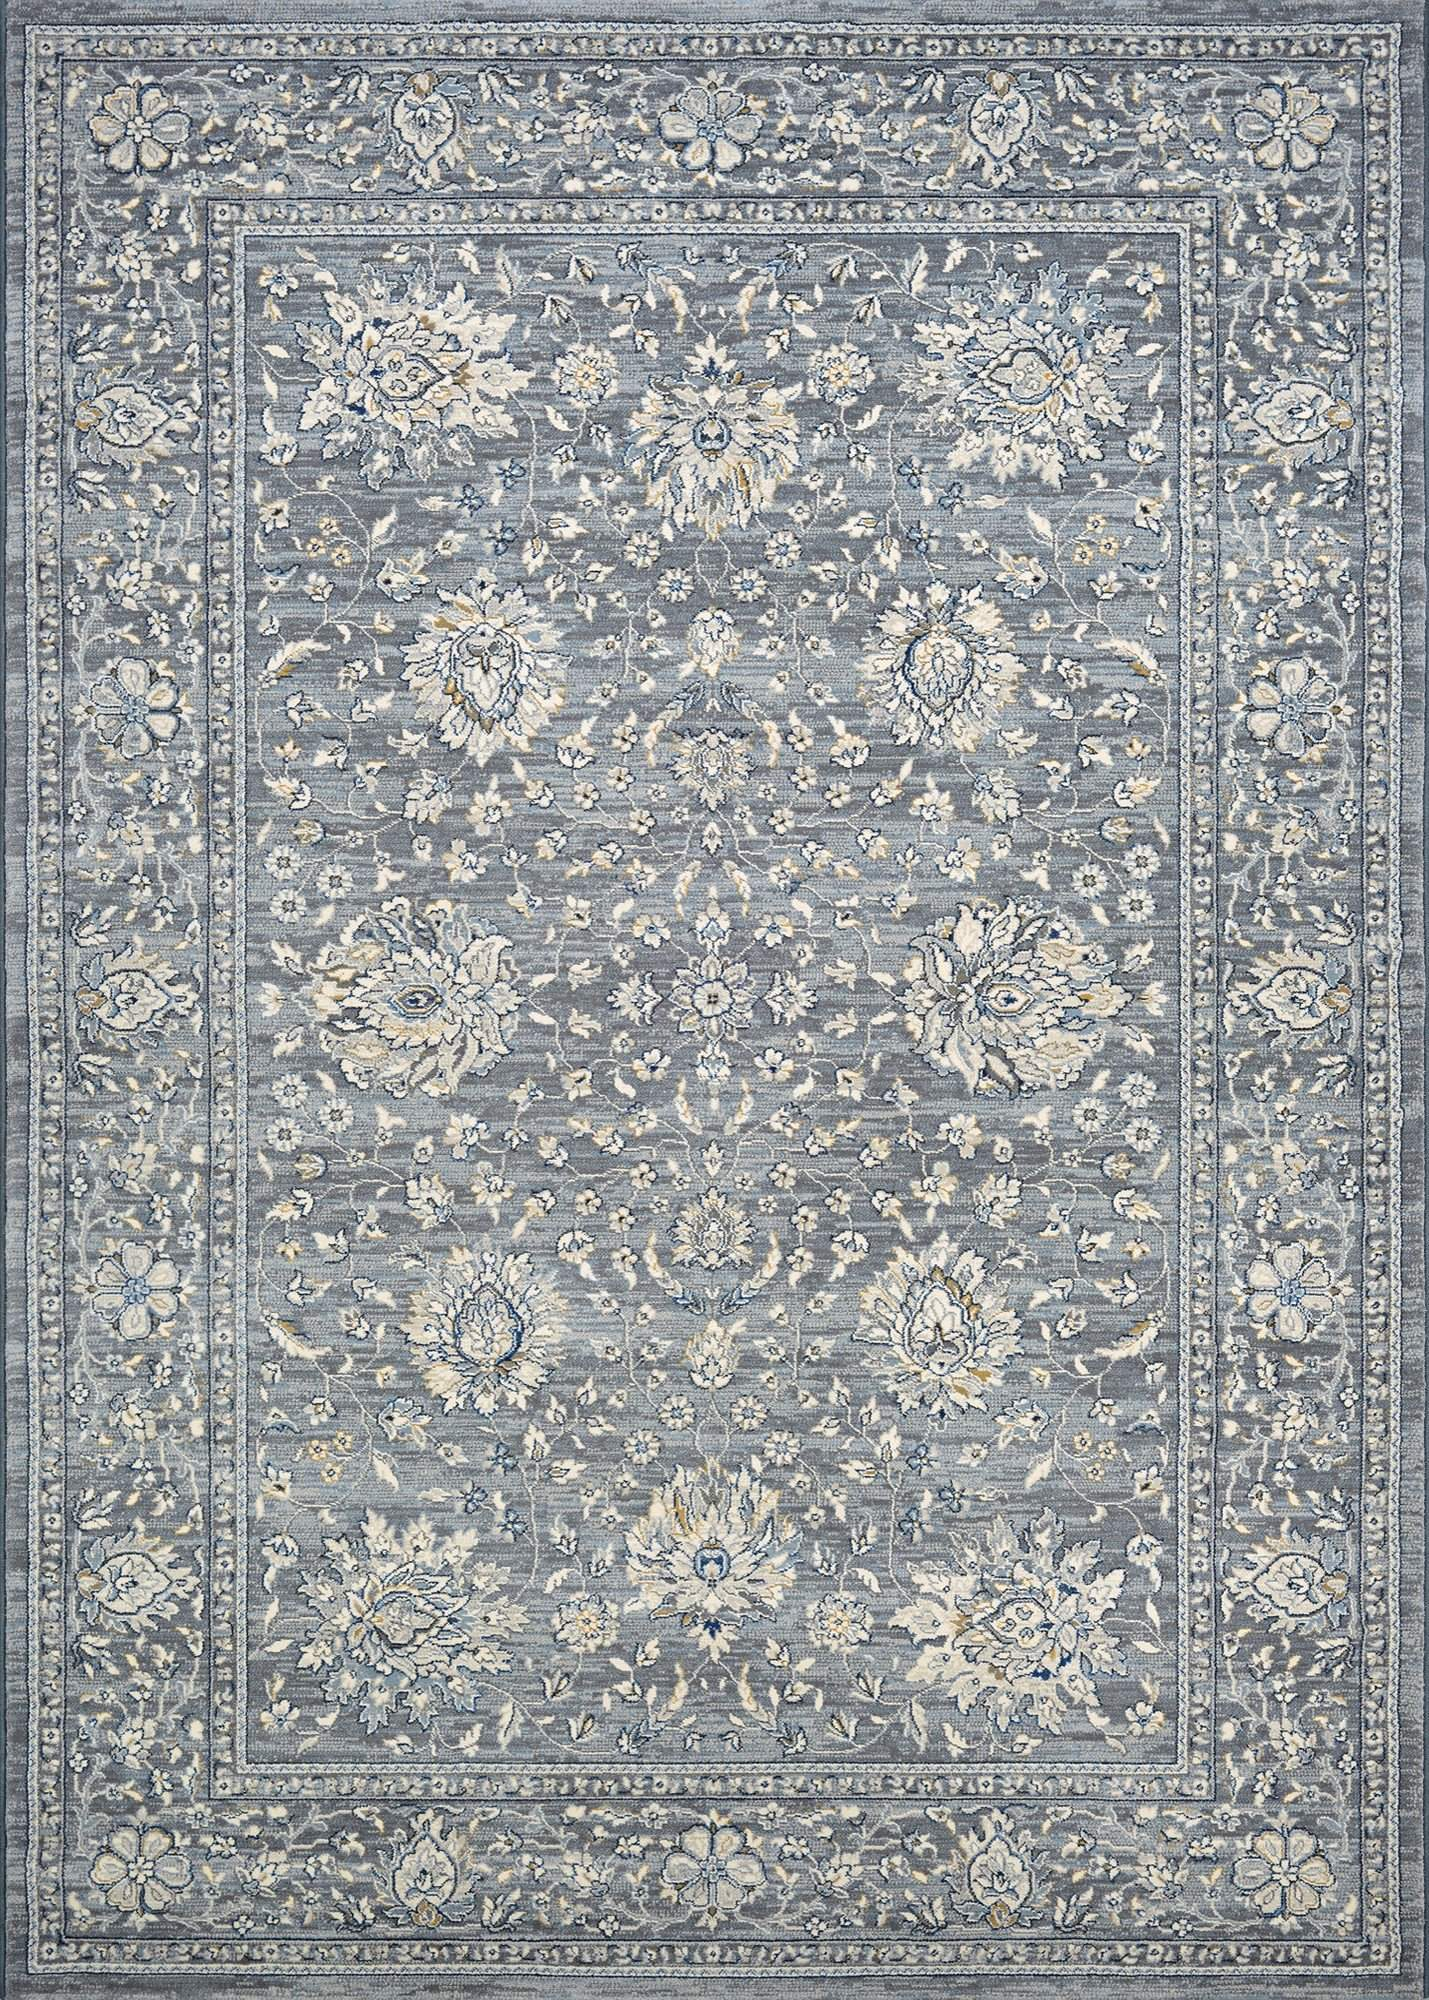 Sultan Treasures Persian Isfahan Area Rugs-Area Rugs-Rug Shop and More